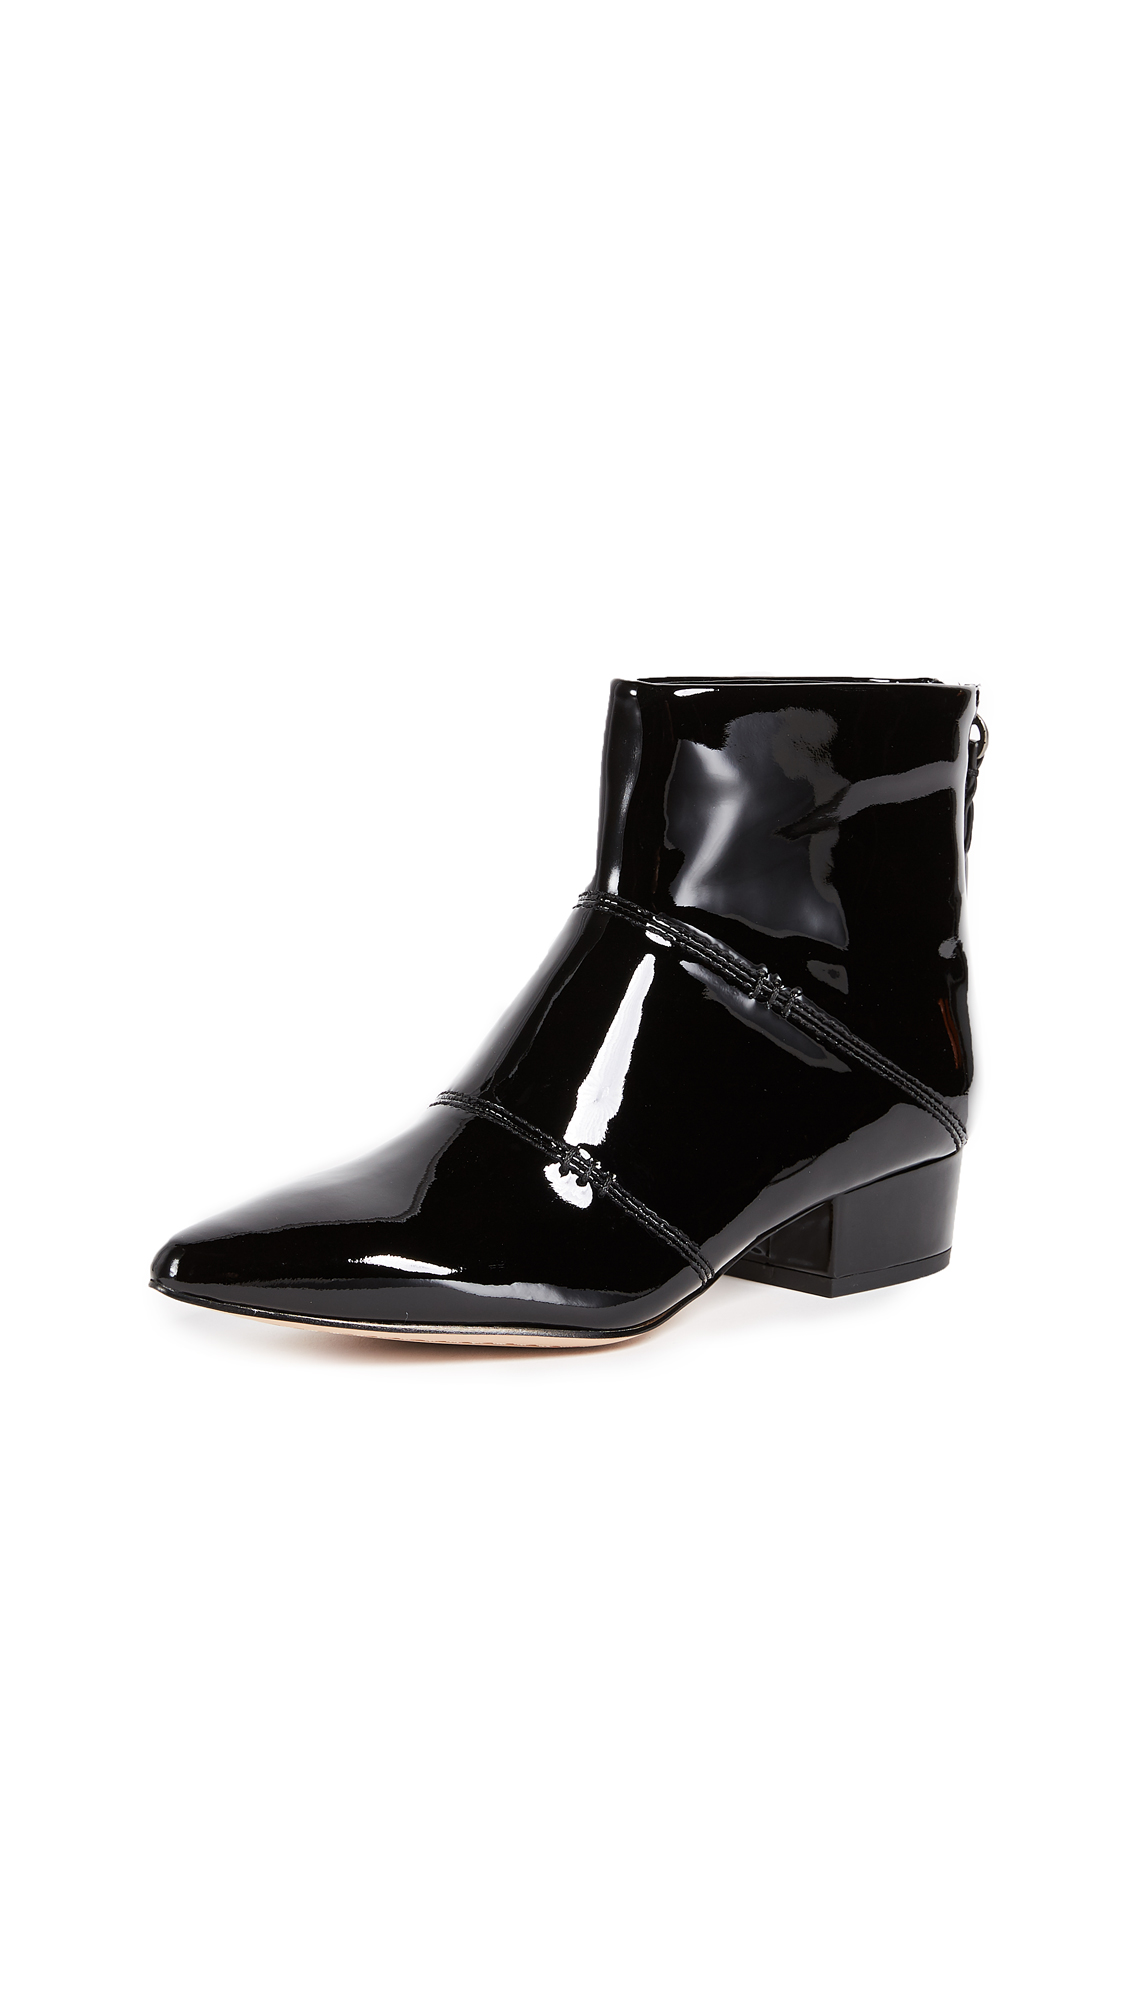 Splendid Rina II Booties - Black